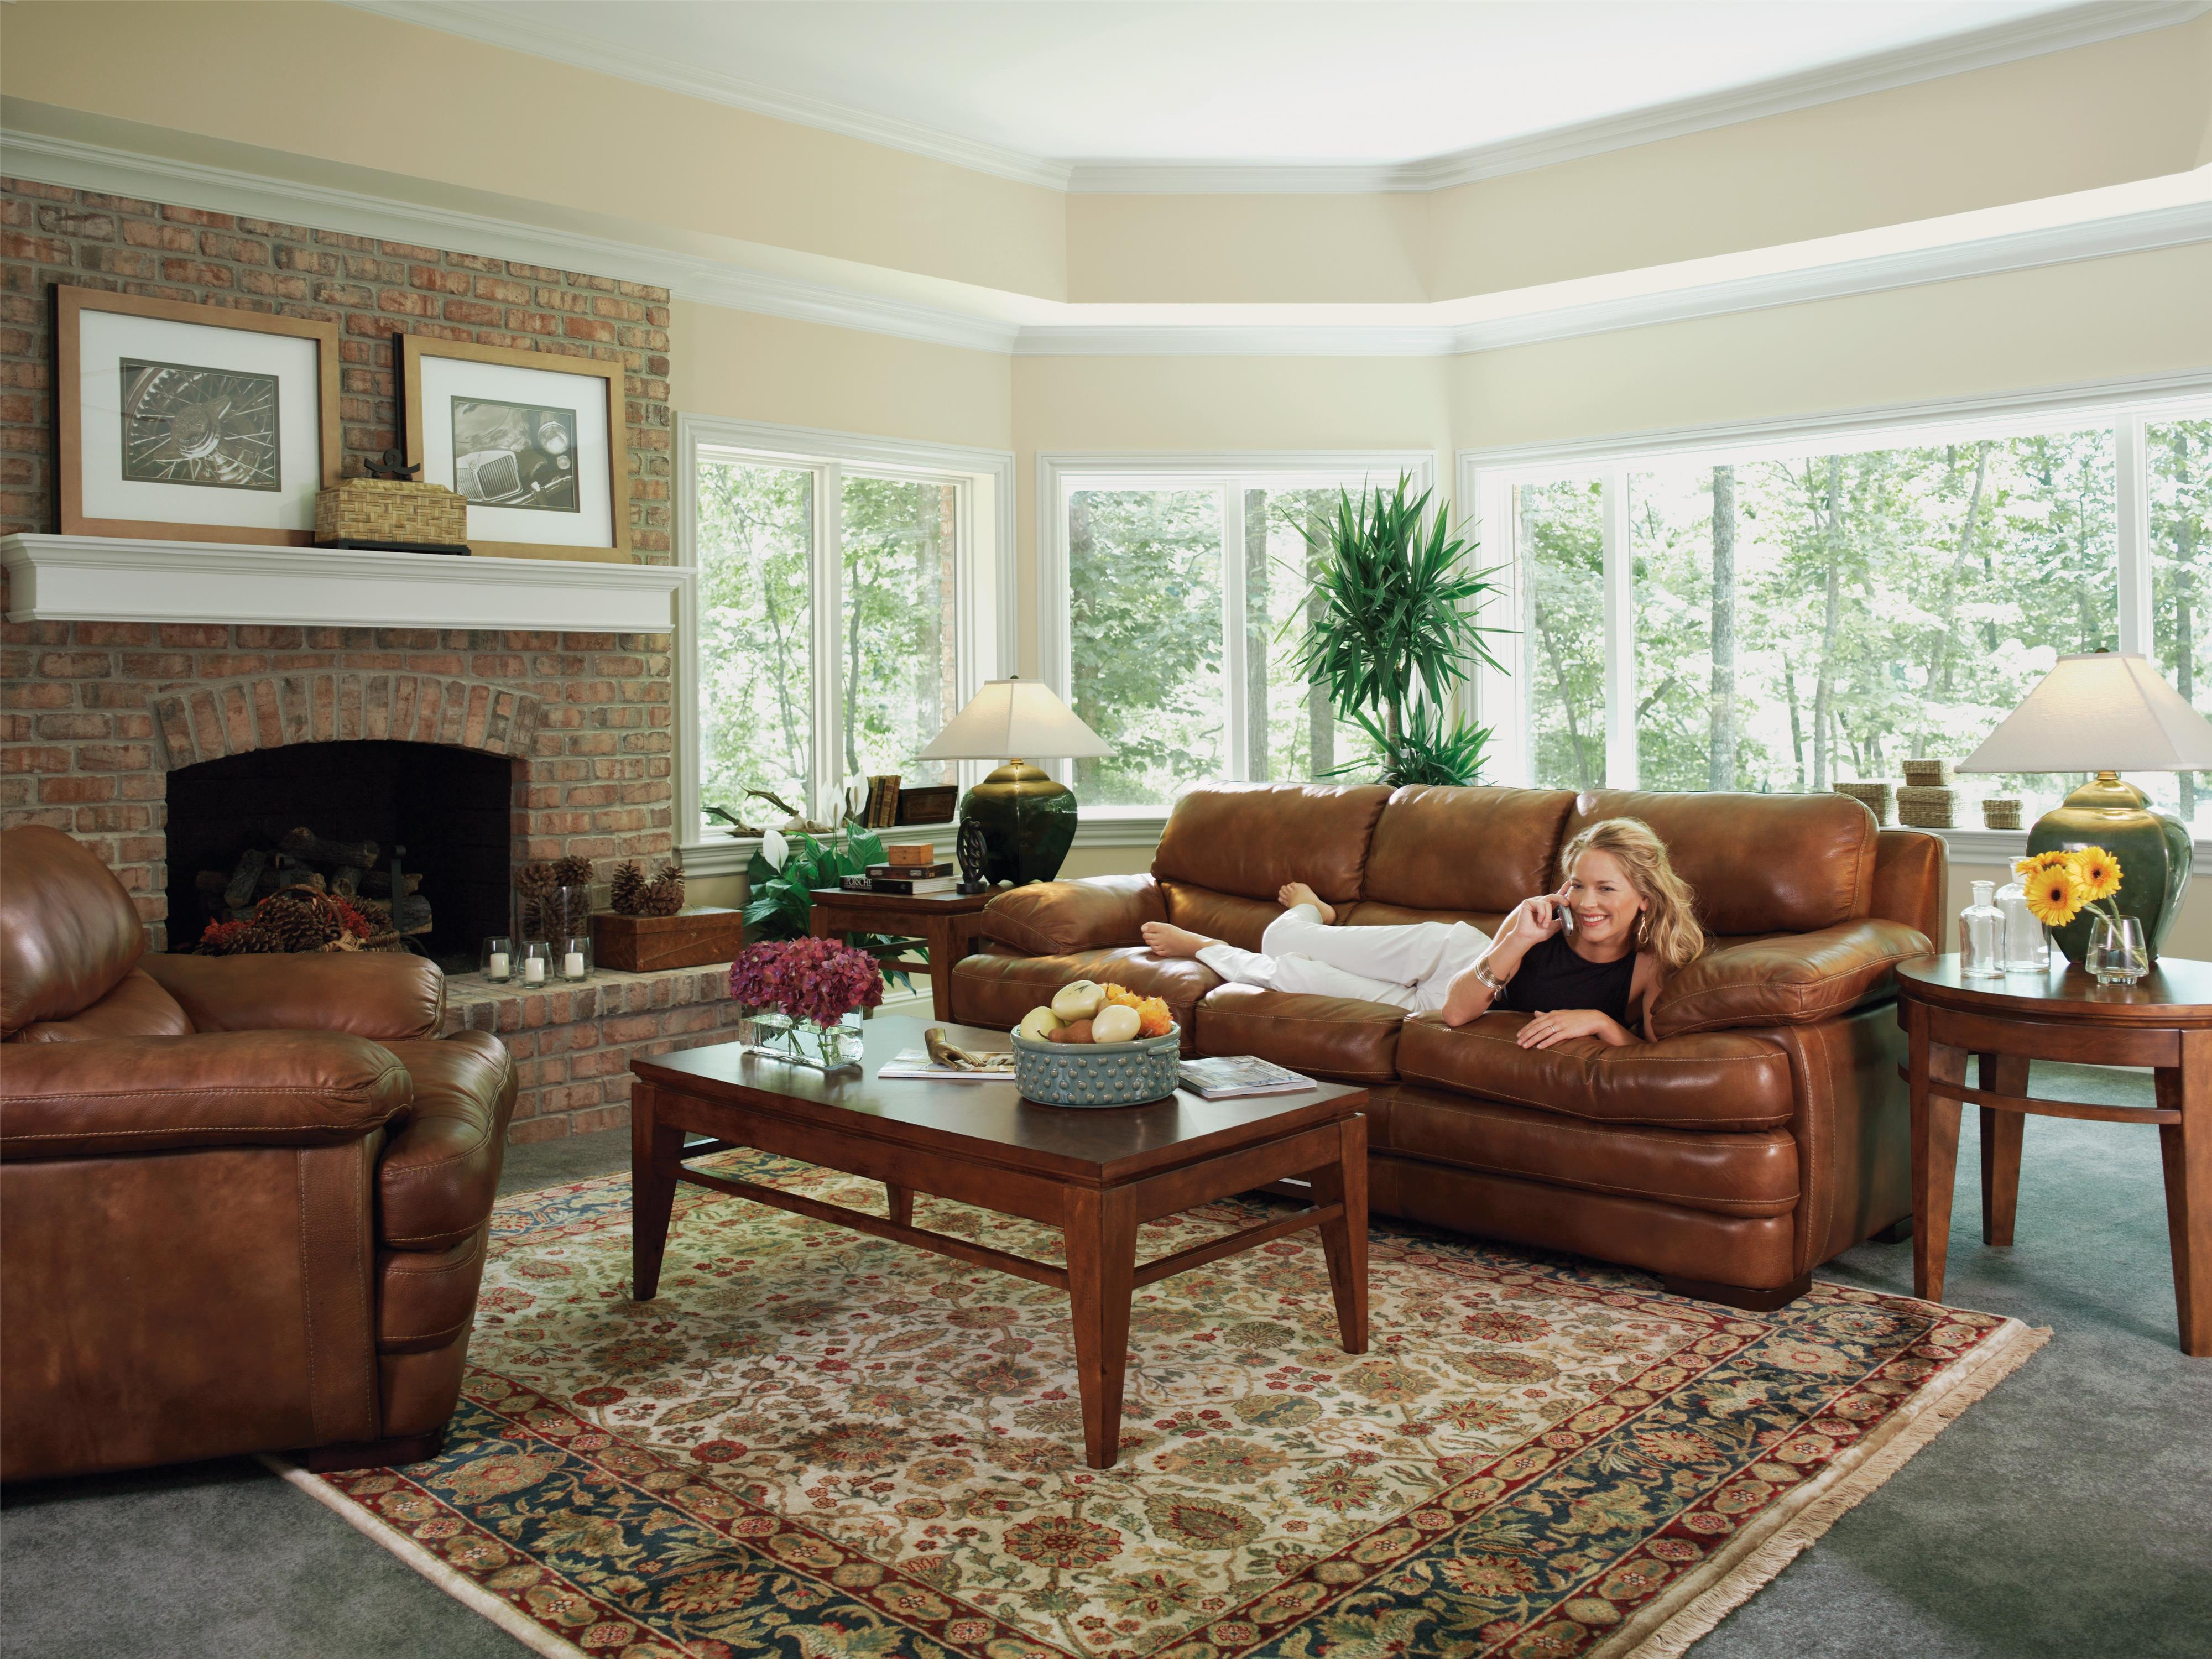 Flexsteel Latitudes Dylan Leather Stationary Sofa Rooms and